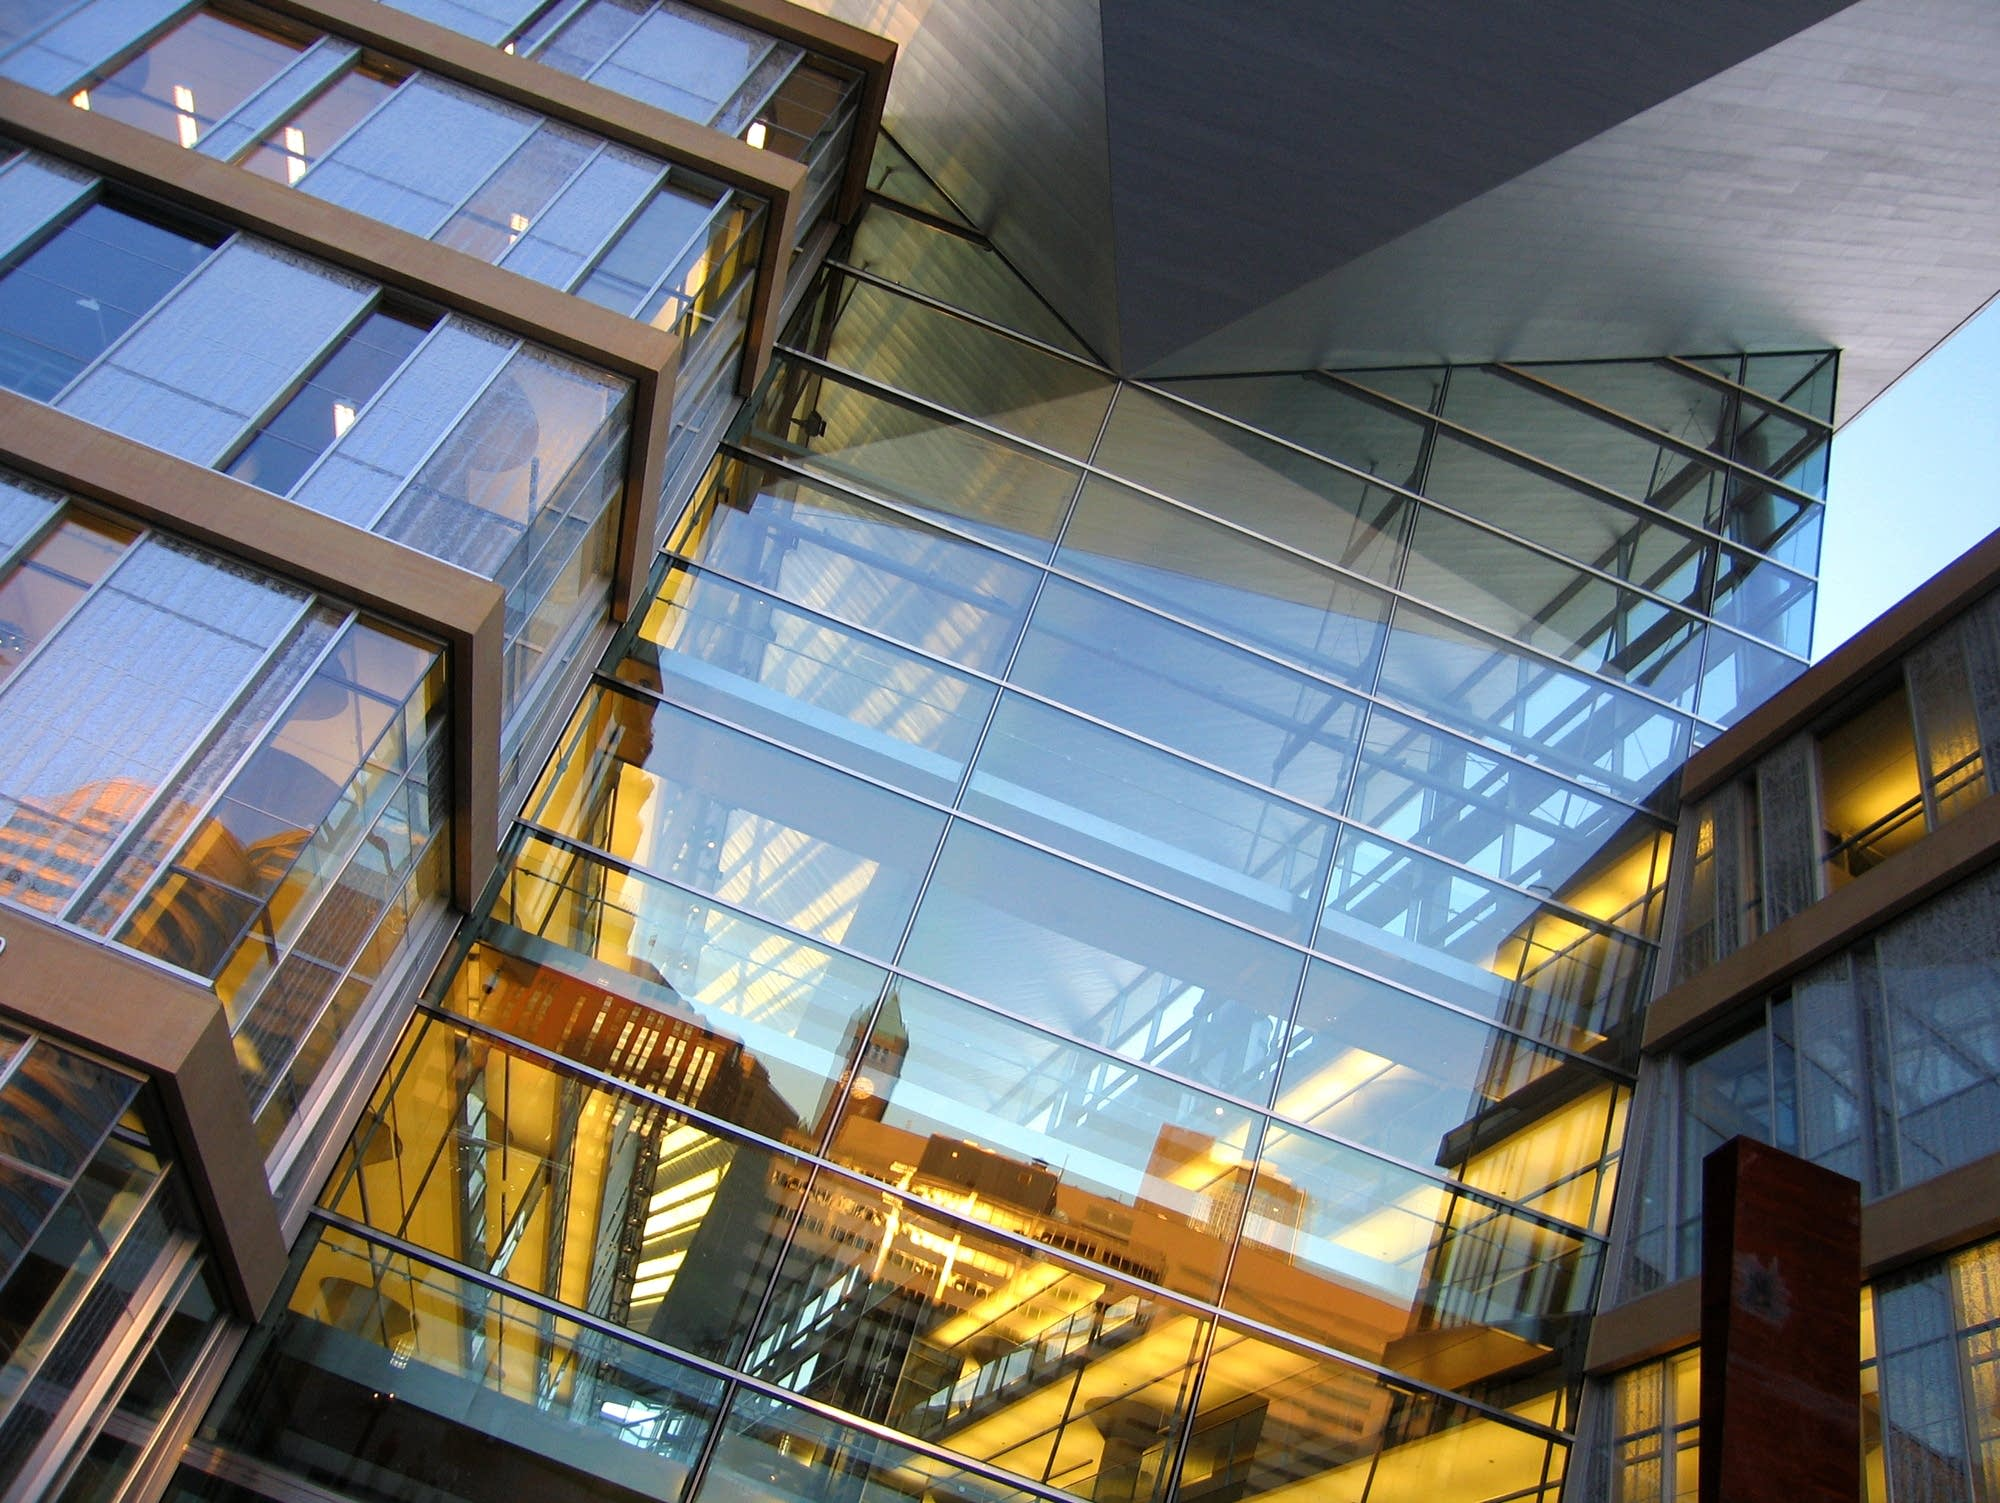 Minneapolis Central Library